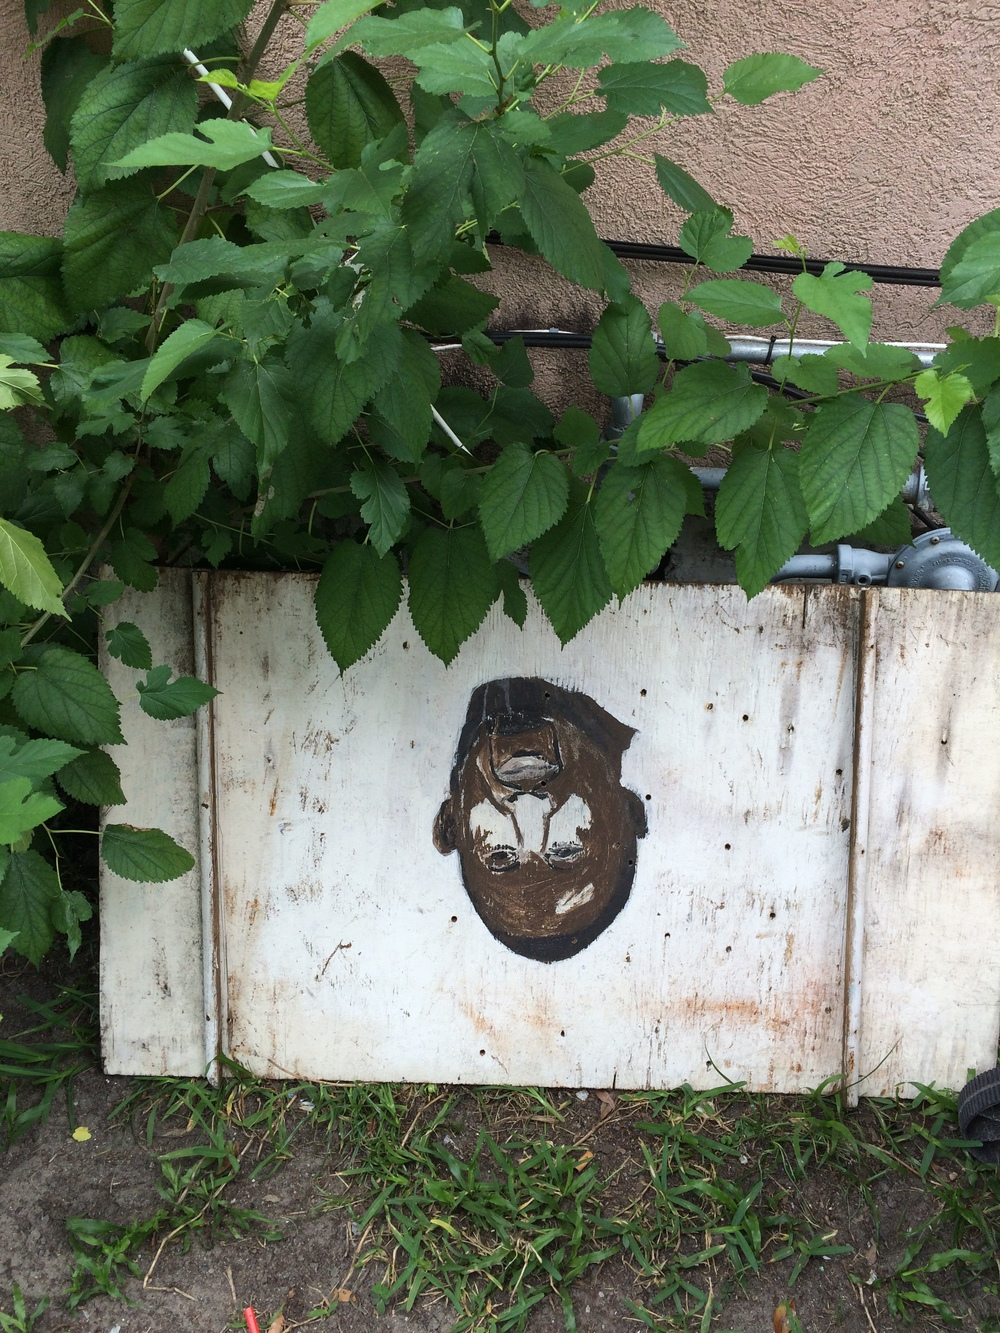 This unfinished, hand painted portrait was left abandoned next to some garbage cans on 38th Street. Hand painted signs are a classic symbol of Savannah culture.